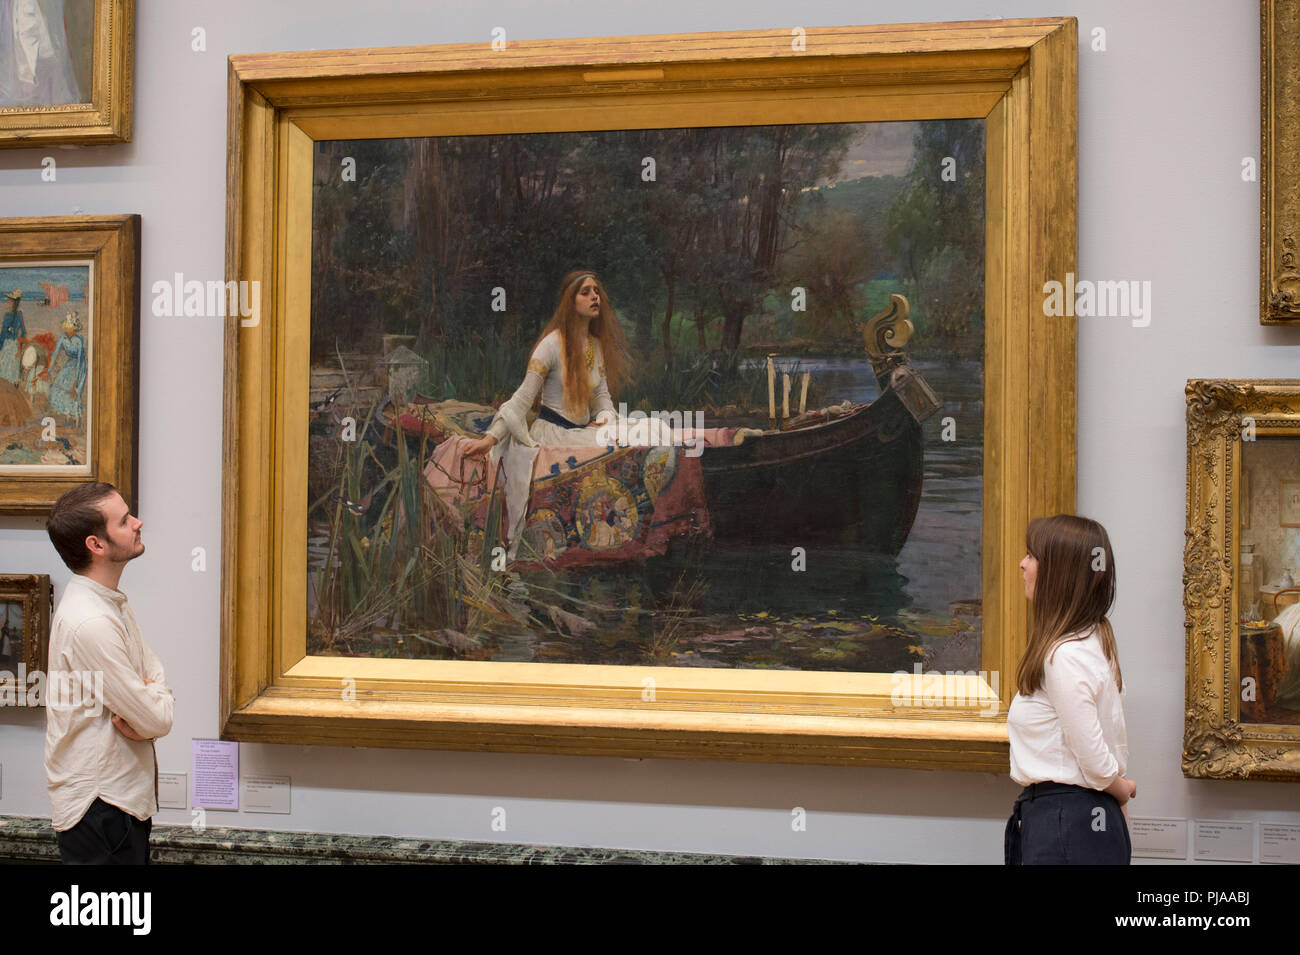 Tate Britain, London, UK. 5 September, 2018. Tate Britain staff with John William Waterhouse's The Lady of Shalott 1888 to mark the launch of a major new exhibition at the National Gallery of Australia. Over forty works from Tate Britain's collection of Pre-Raphaelite art will be loaned to the National Gallery of Australia in December for a major new exhibition. Credit: Malcolm Park/Alamy Live News. - Stock Image